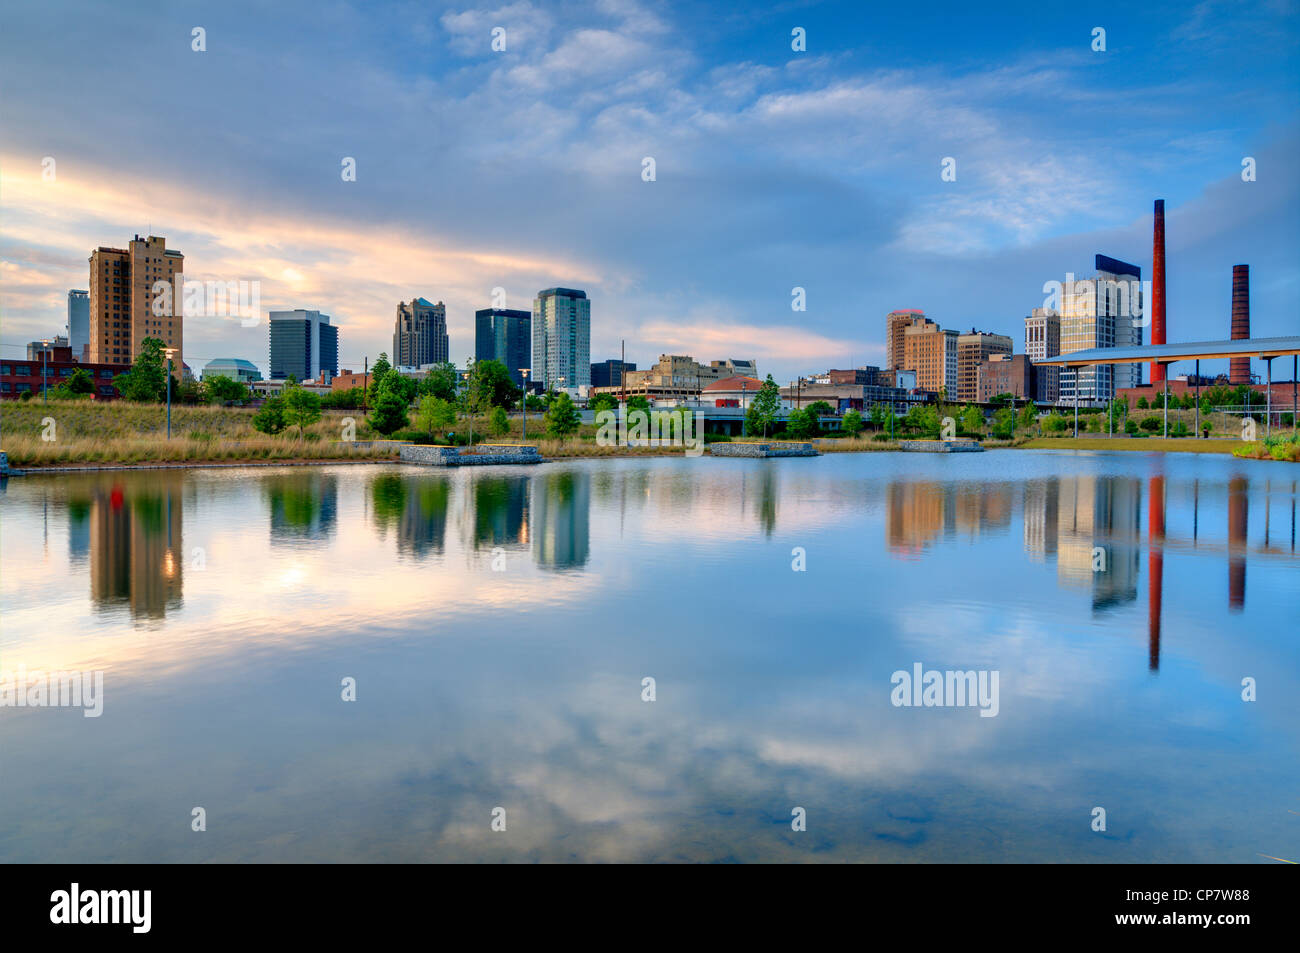 Buildings in downtown Birmingham, Alabama, USA as seen from Railroad Park. - Stock Image